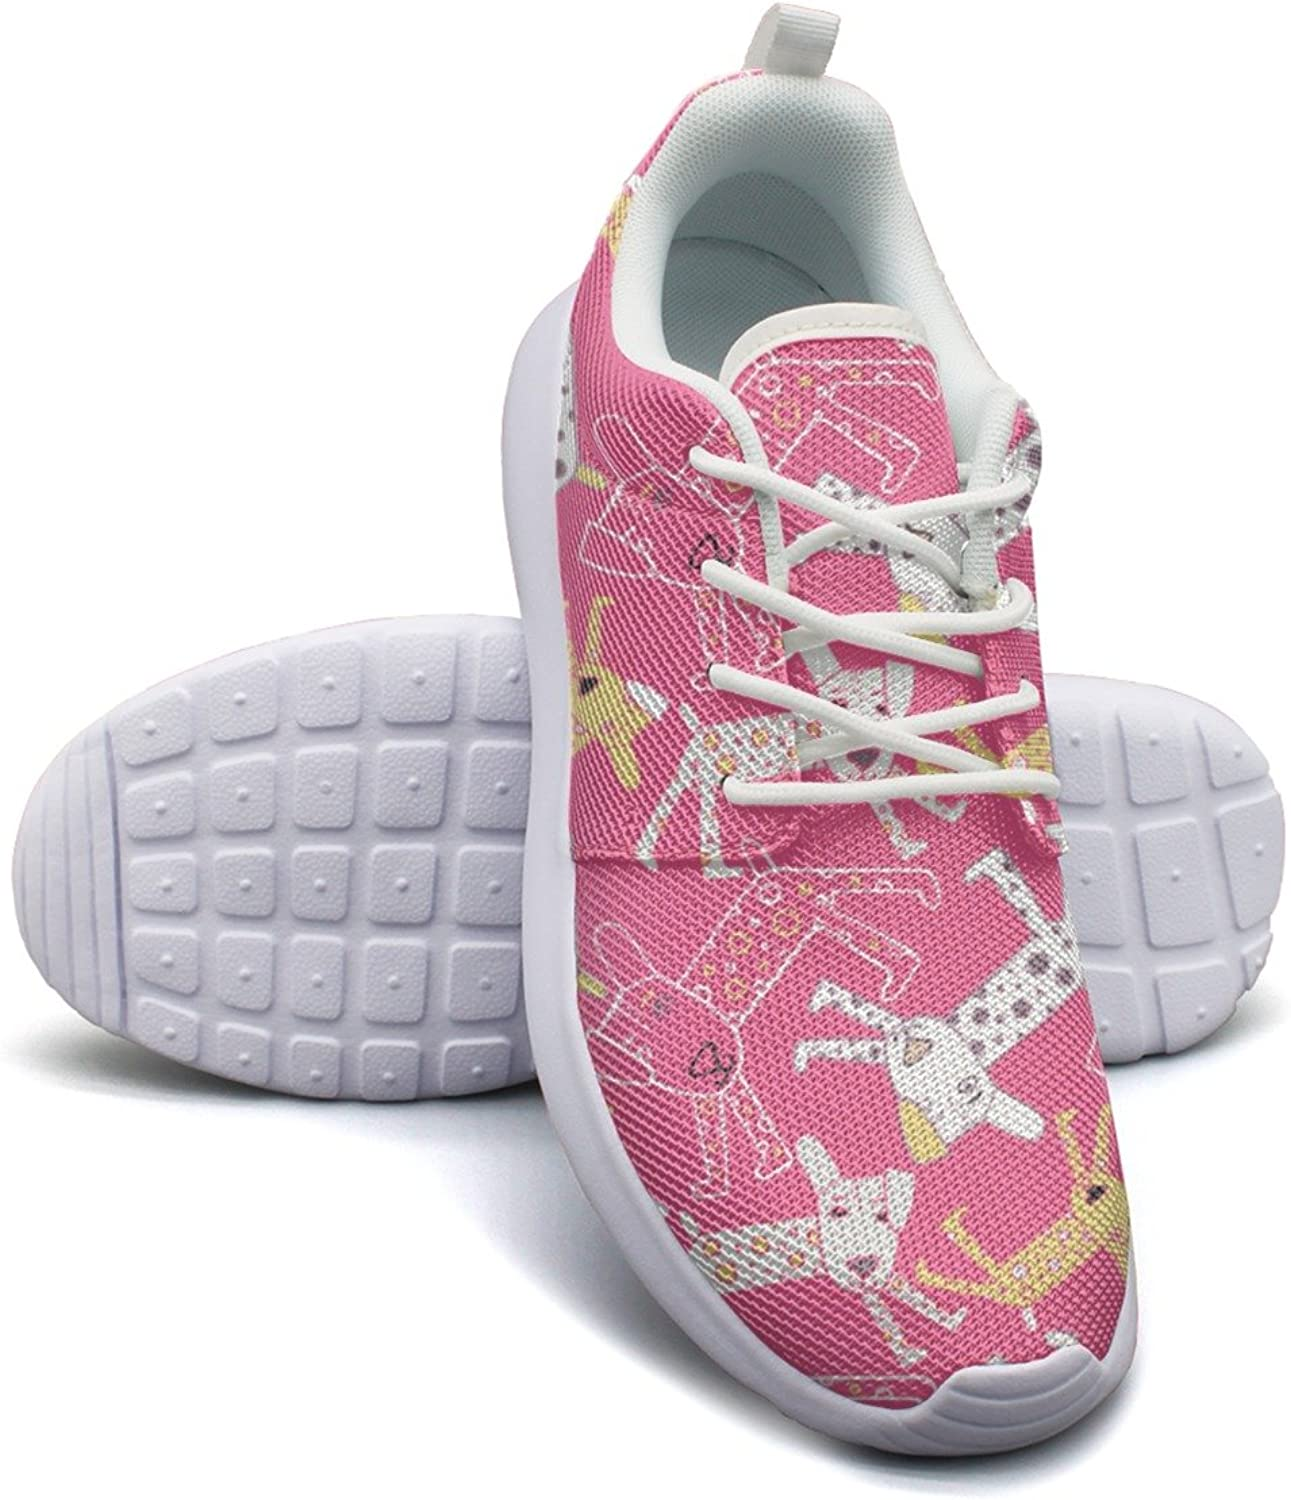 Cartoon Spotted Dog Running shoes Women Wide size 6